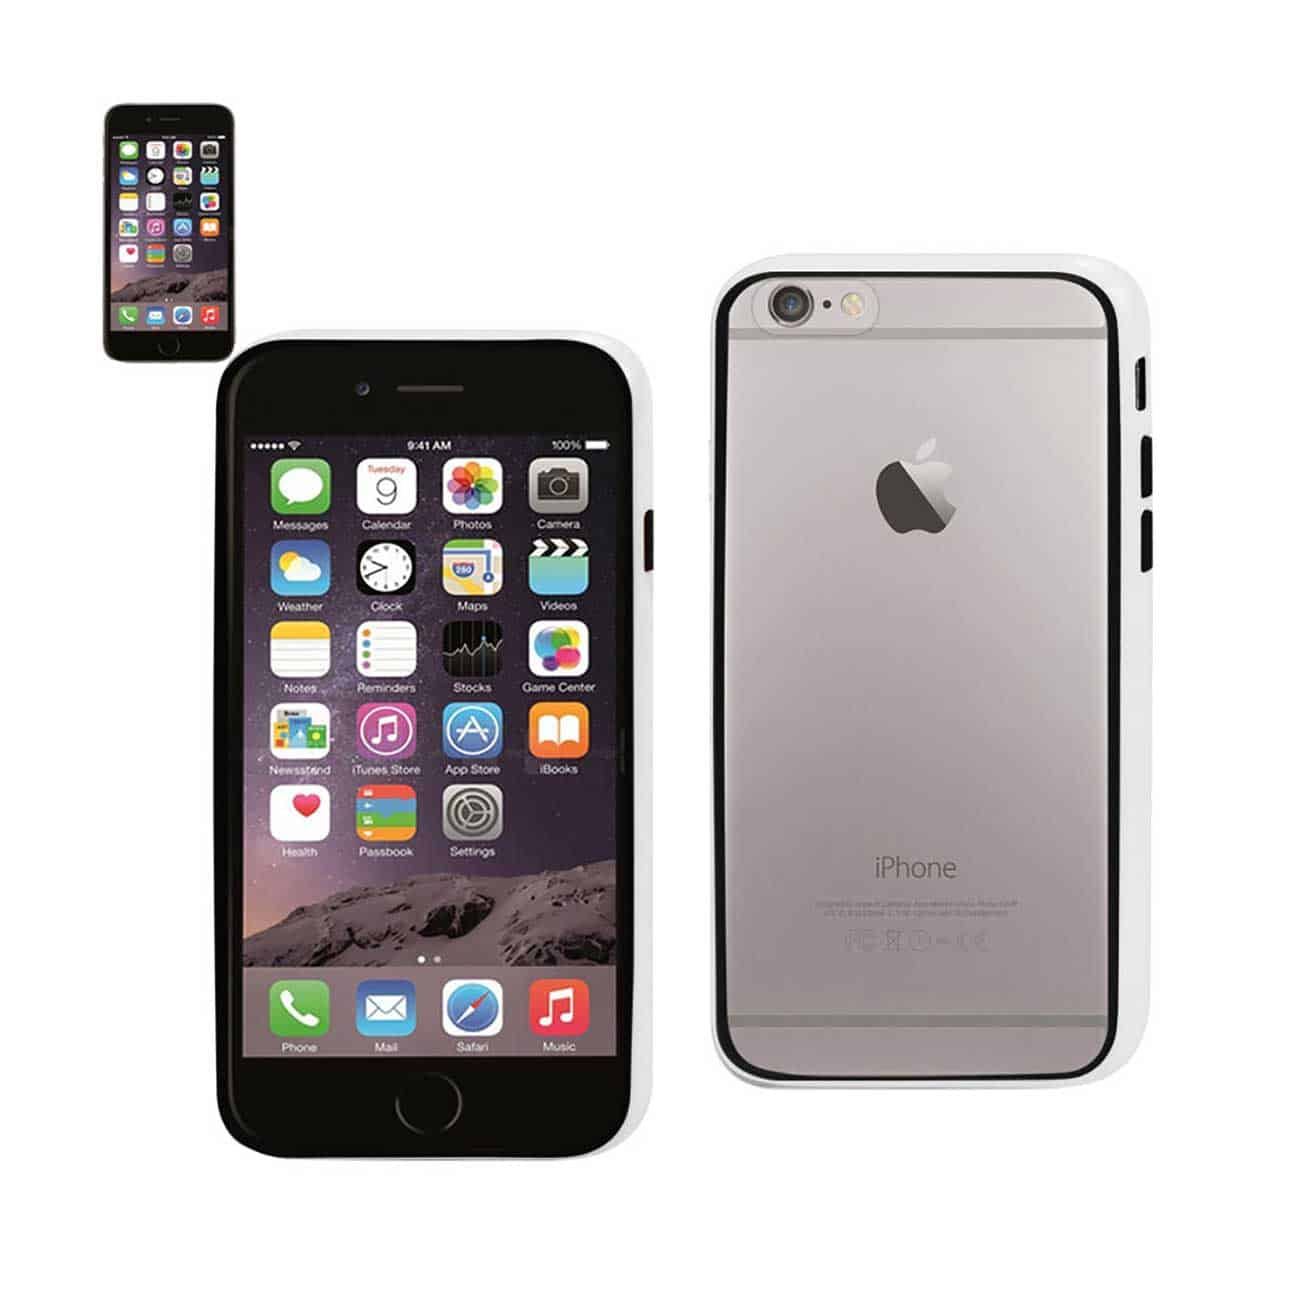 IPHONE 6 BUMPER CASE WITH TEMPERED GLASS SCREEN PROTECTOR IN WHITE